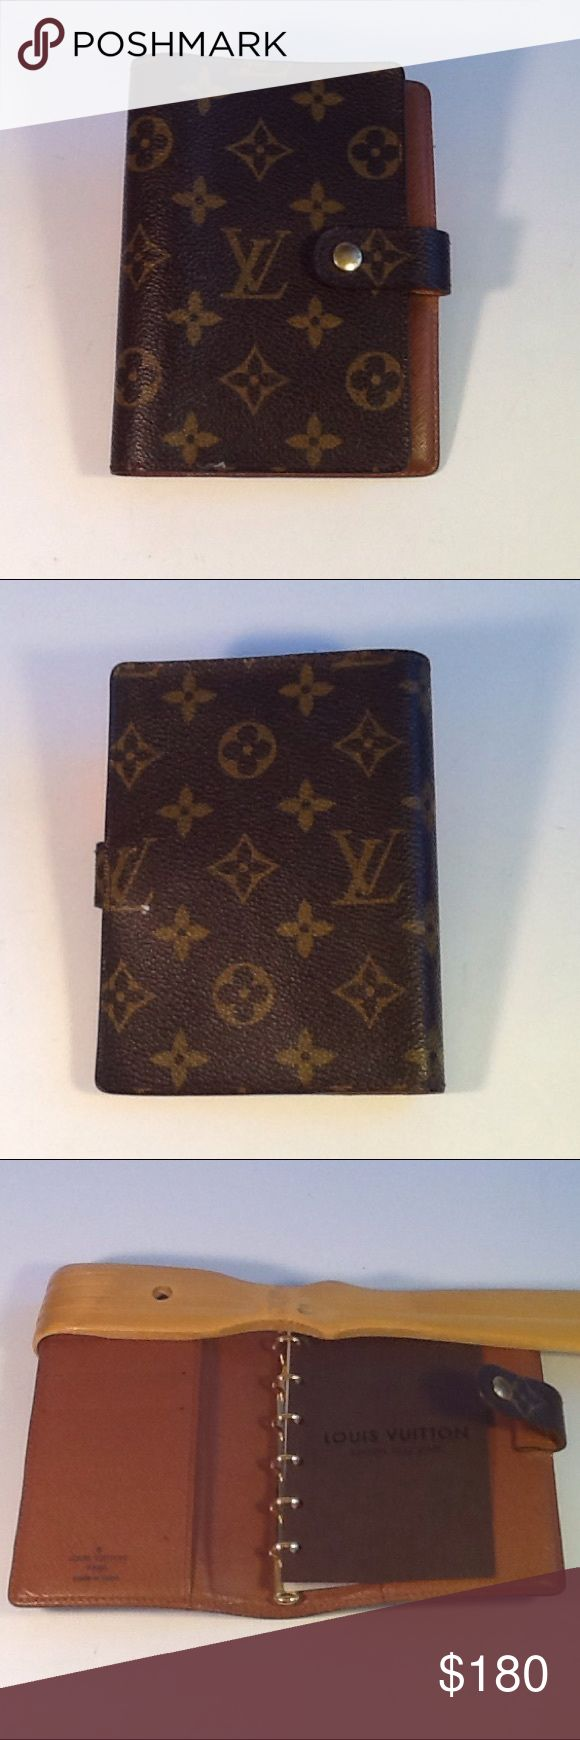 Authentic Louis Vuitton Monogram Agenda Wallet. Leather showed signs of used. The canvas us good. The wallet was made in Spain with a date code CA 0958. Louis Vuitton Accessories